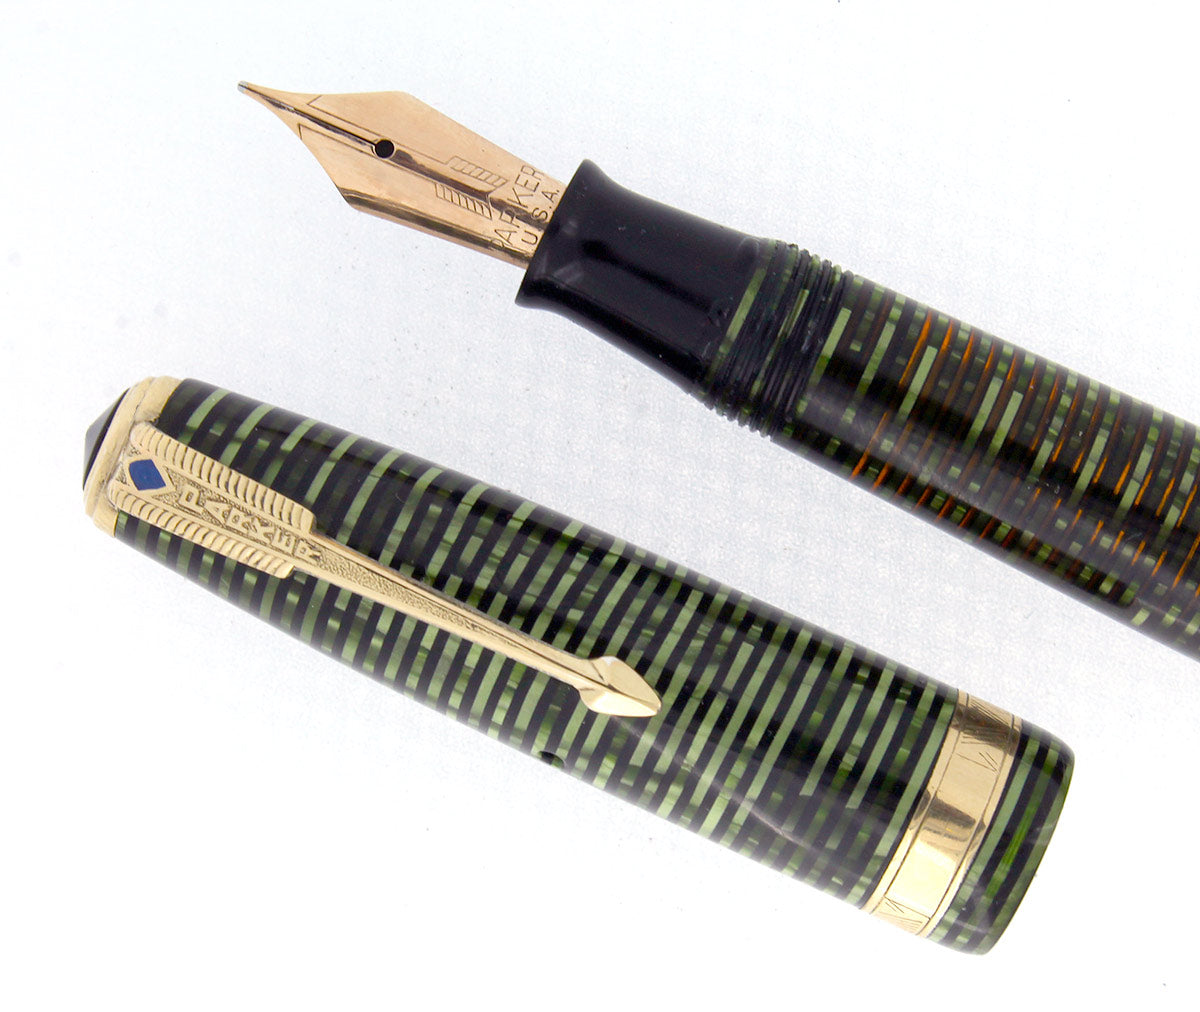 1945 PARKER EMERALD PEARL DOUBLE JEWEL VACUMATIC FOUNTAIN PEN RESTORED OFFERED BY ANTIQUE DIGGER